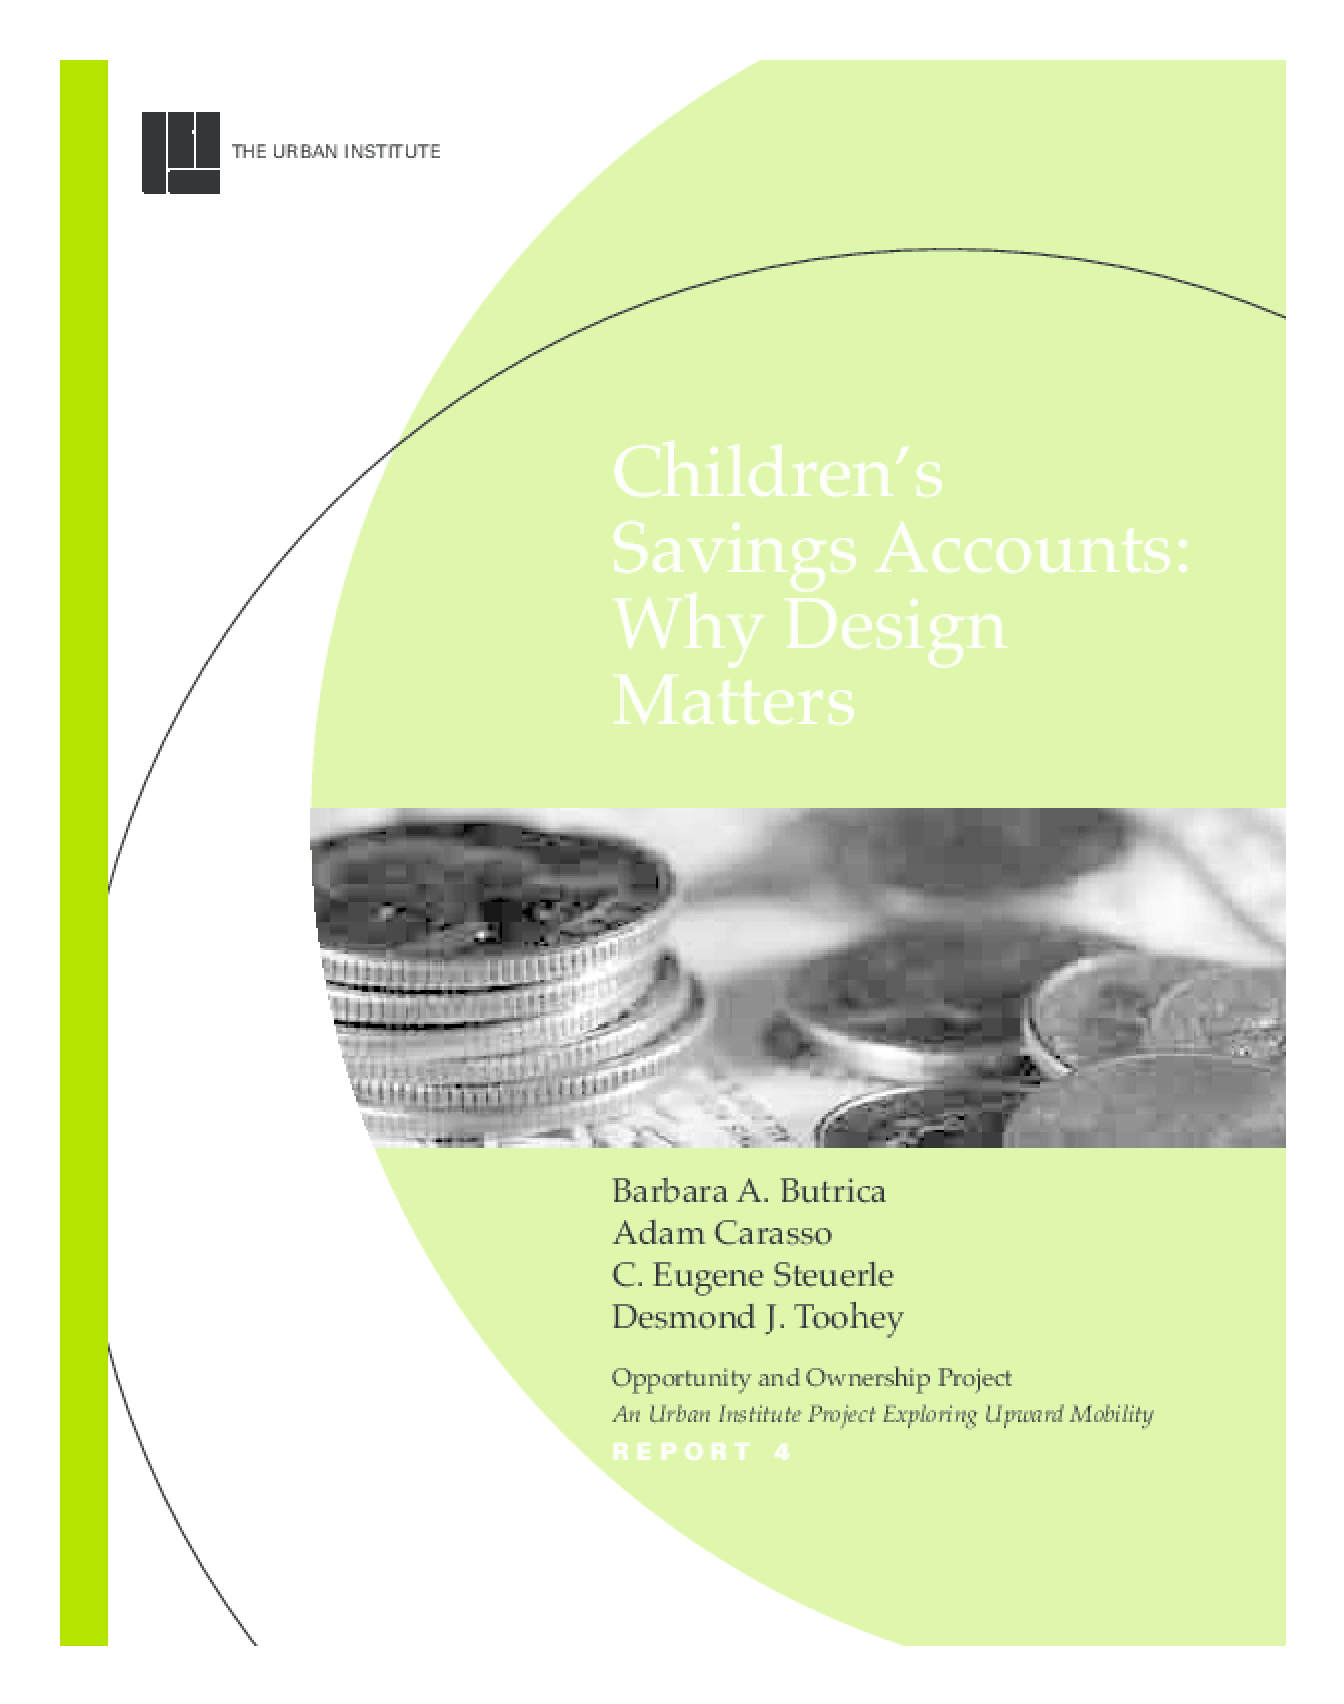 Children's Savings Accounts: Why Design Matters